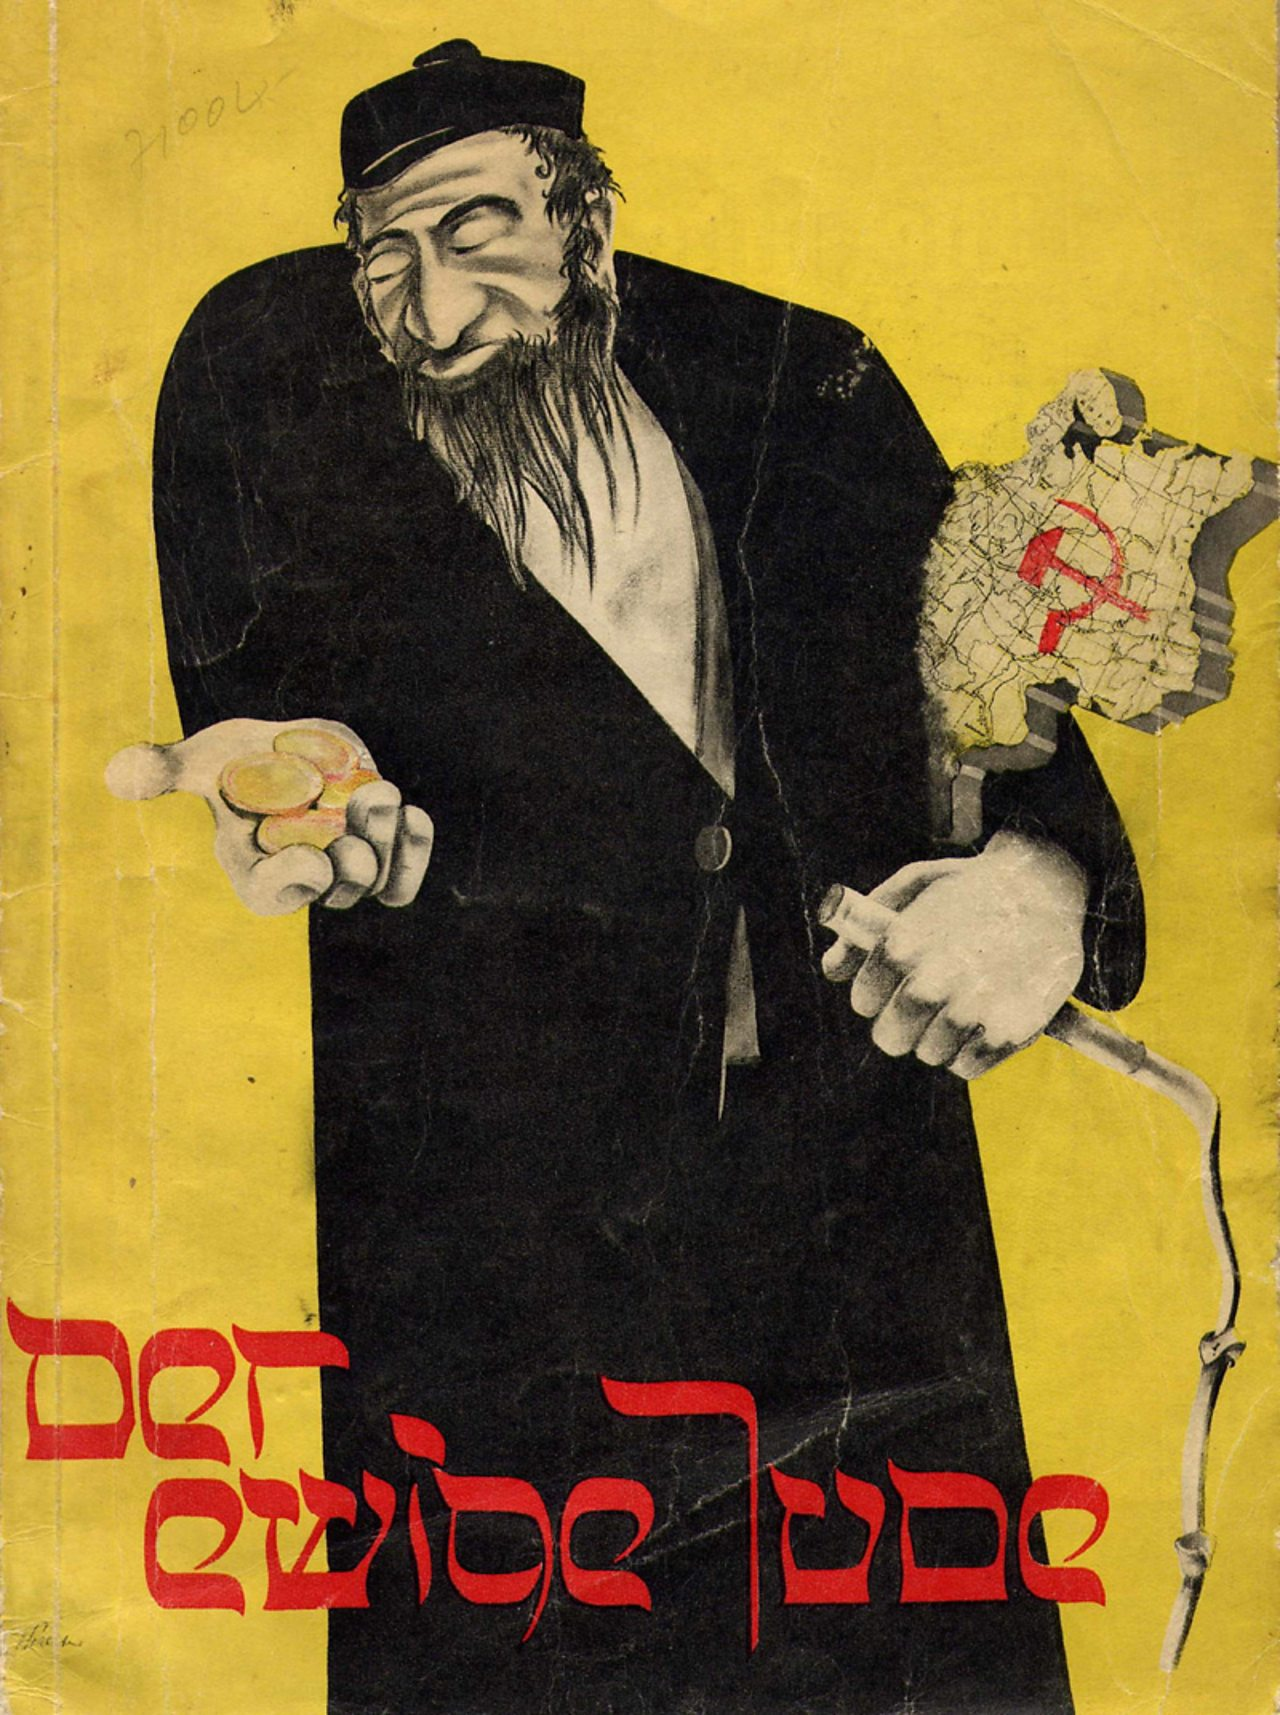 A poster advertising the 1937 exhibition 'The Eternal Jew': a landmark in anti-Semitic propaganda, which opened in Munich and toured Germany.